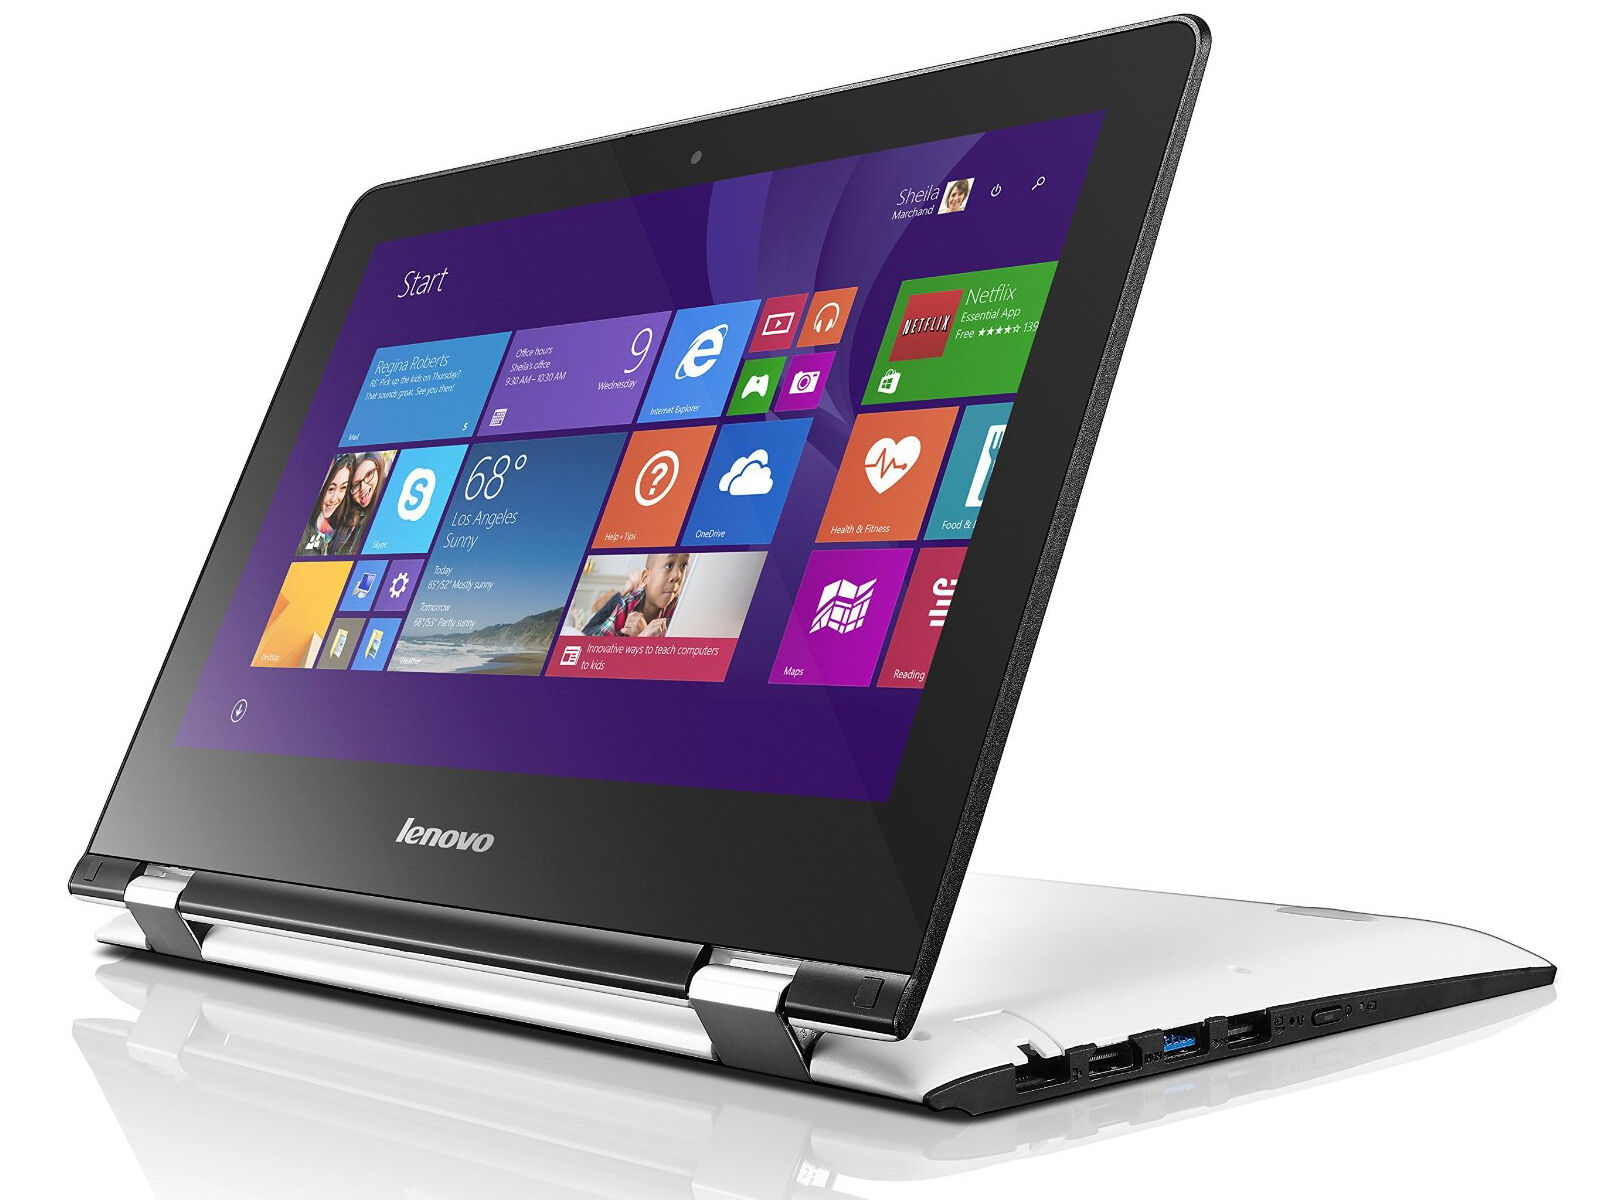 lenovo yoga 300 11 6 touch screen 2 in 1 tablet laptop. Black Bedroom Furniture Sets. Home Design Ideas